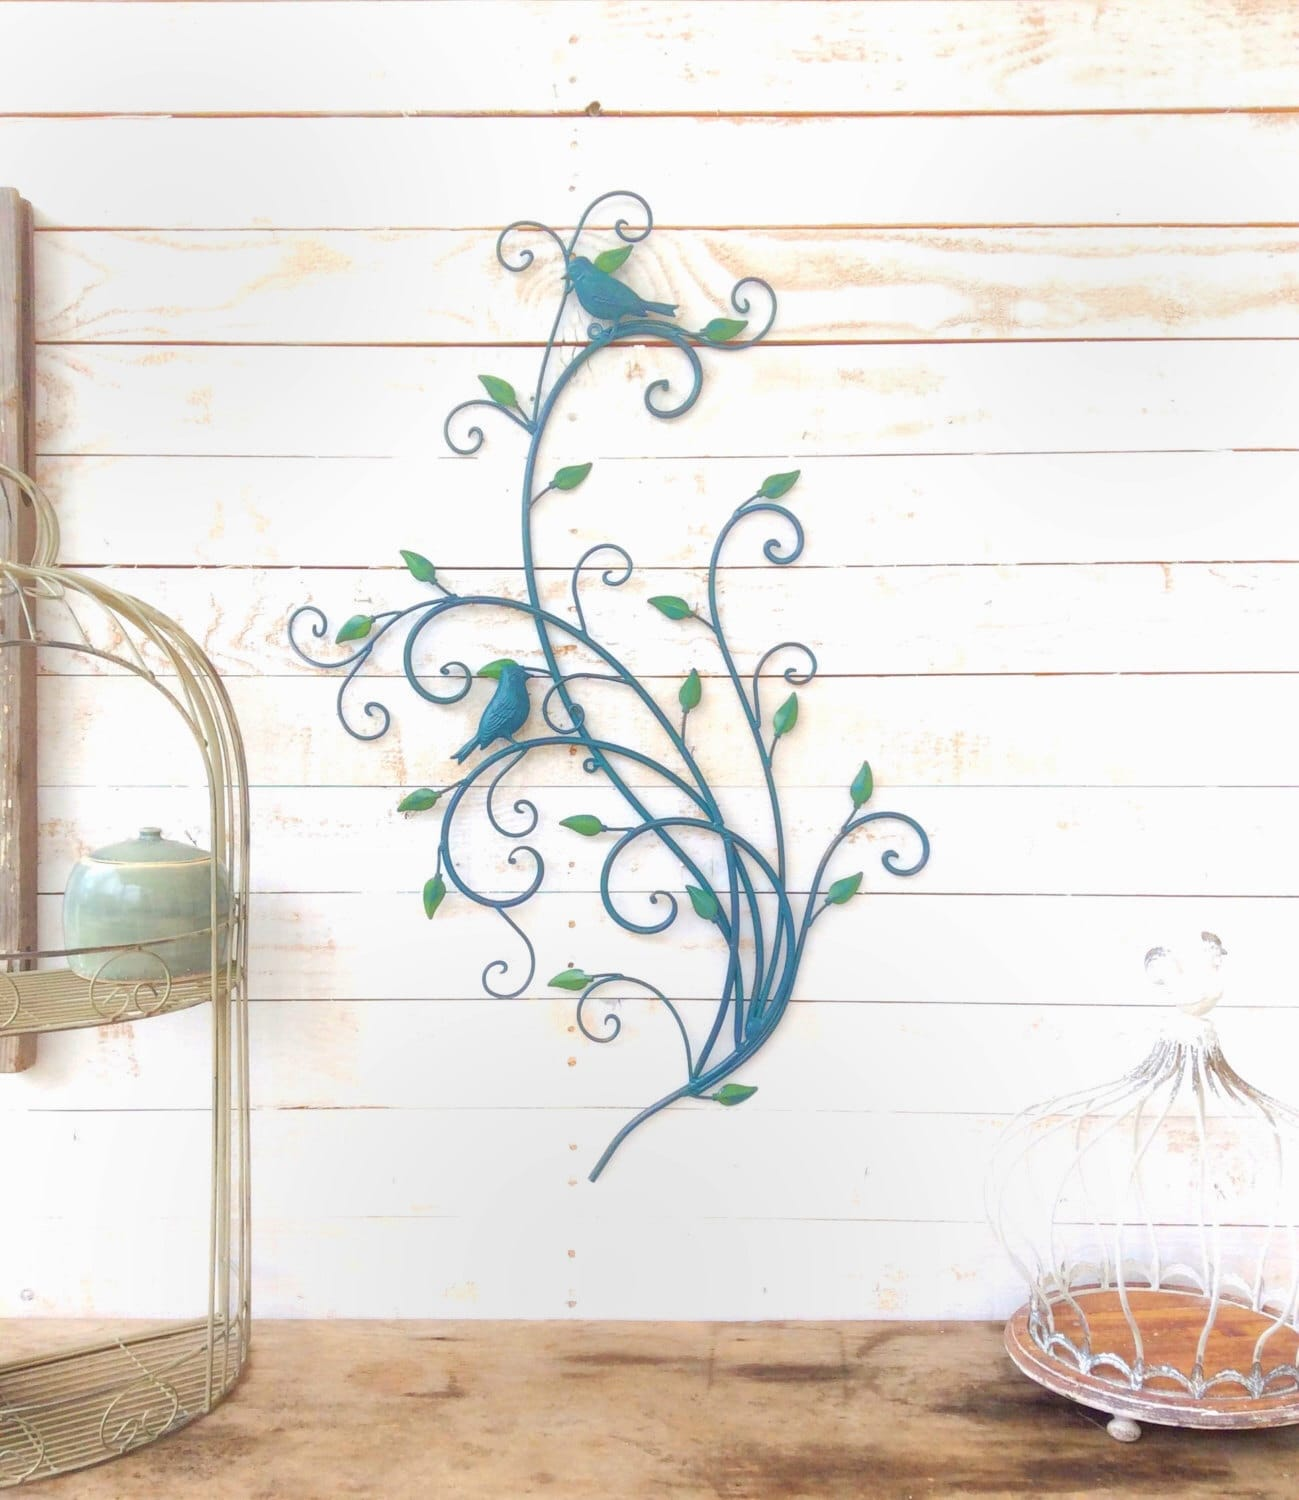 Iron bird wall decor home decor for the home wall art bird for Bird home decor